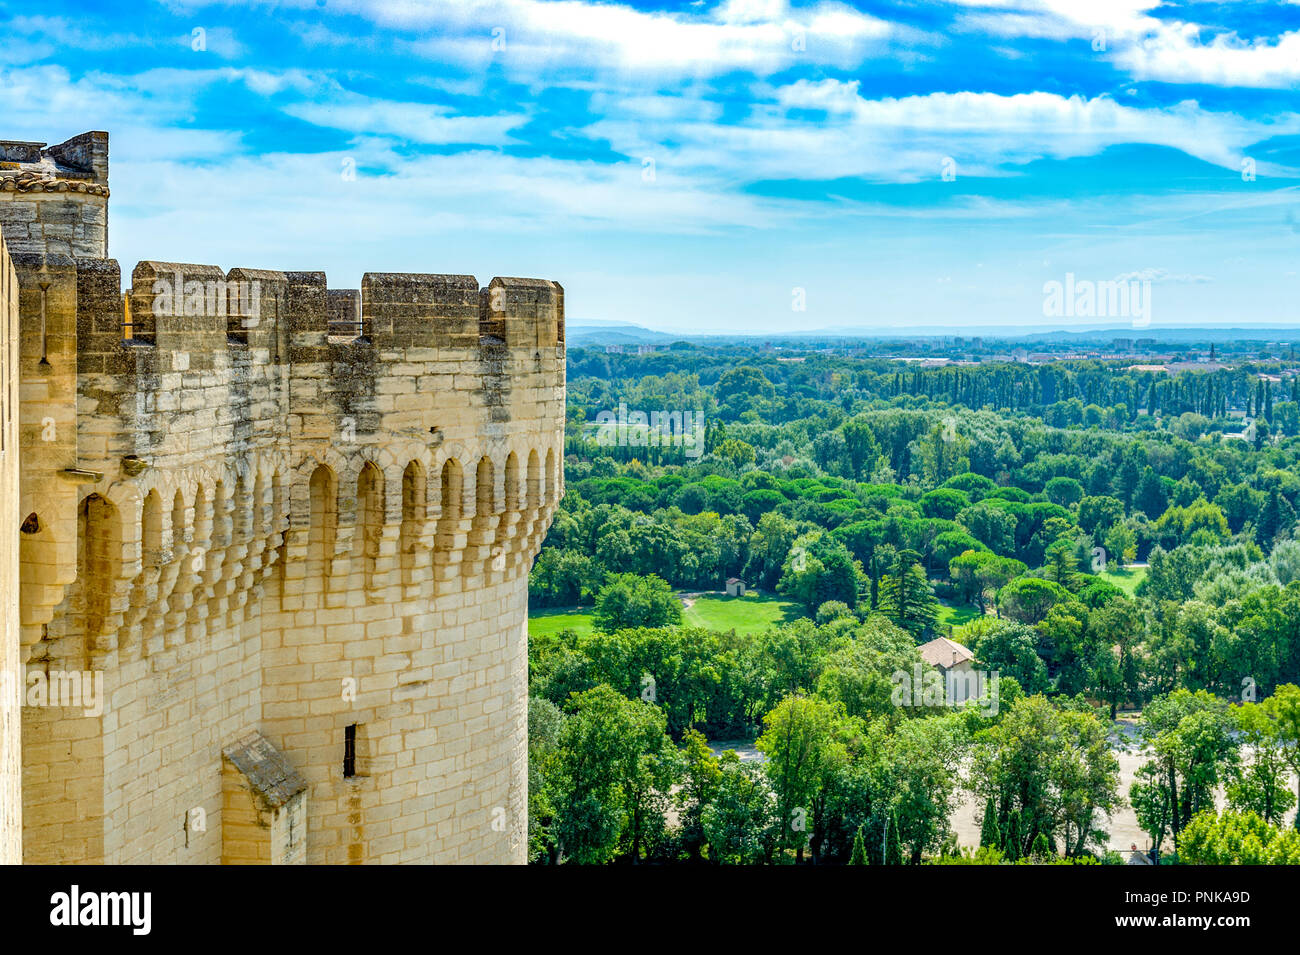 France. Gard (30). Villeneuve-Les-Avignon. Tower of Fort St. Andrew. Sponsored by Philippe le Bel at the end of the 13th century. - Stock Image